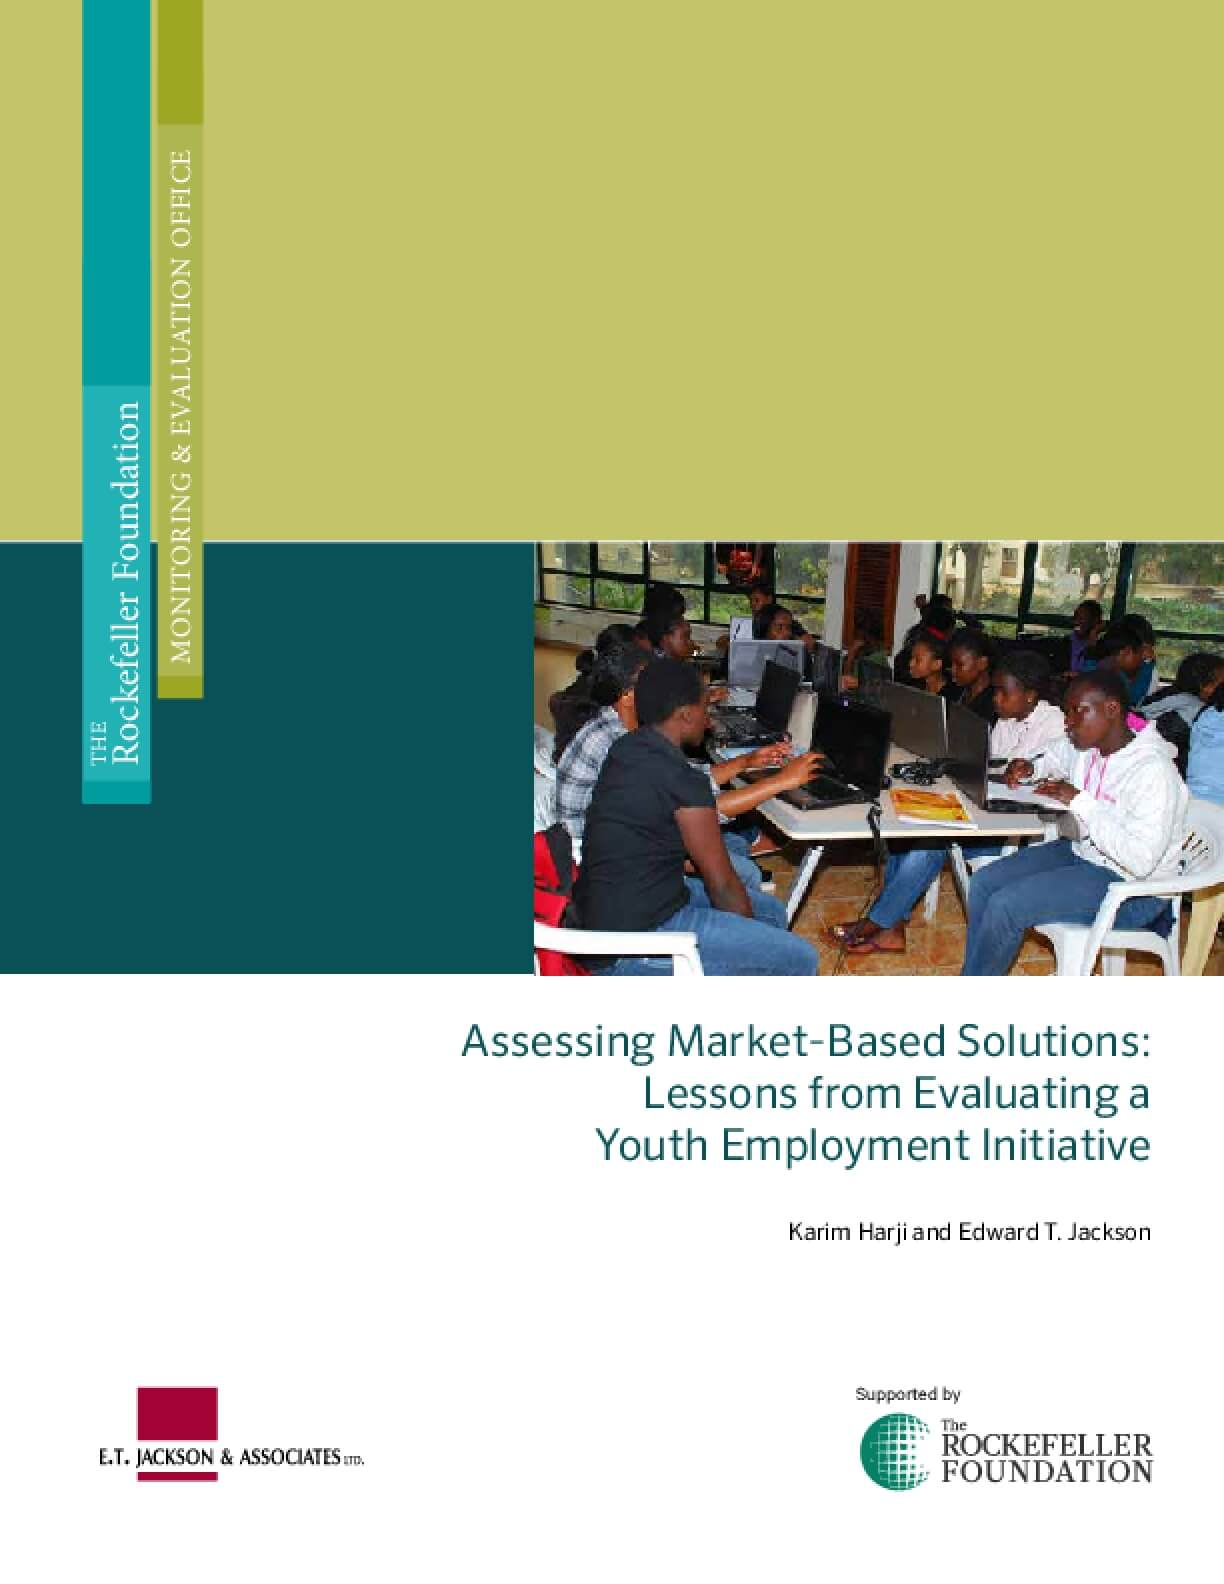 Assessing Market-Based Solutions: Lessons from Evaluating a Youth Employment Initiative